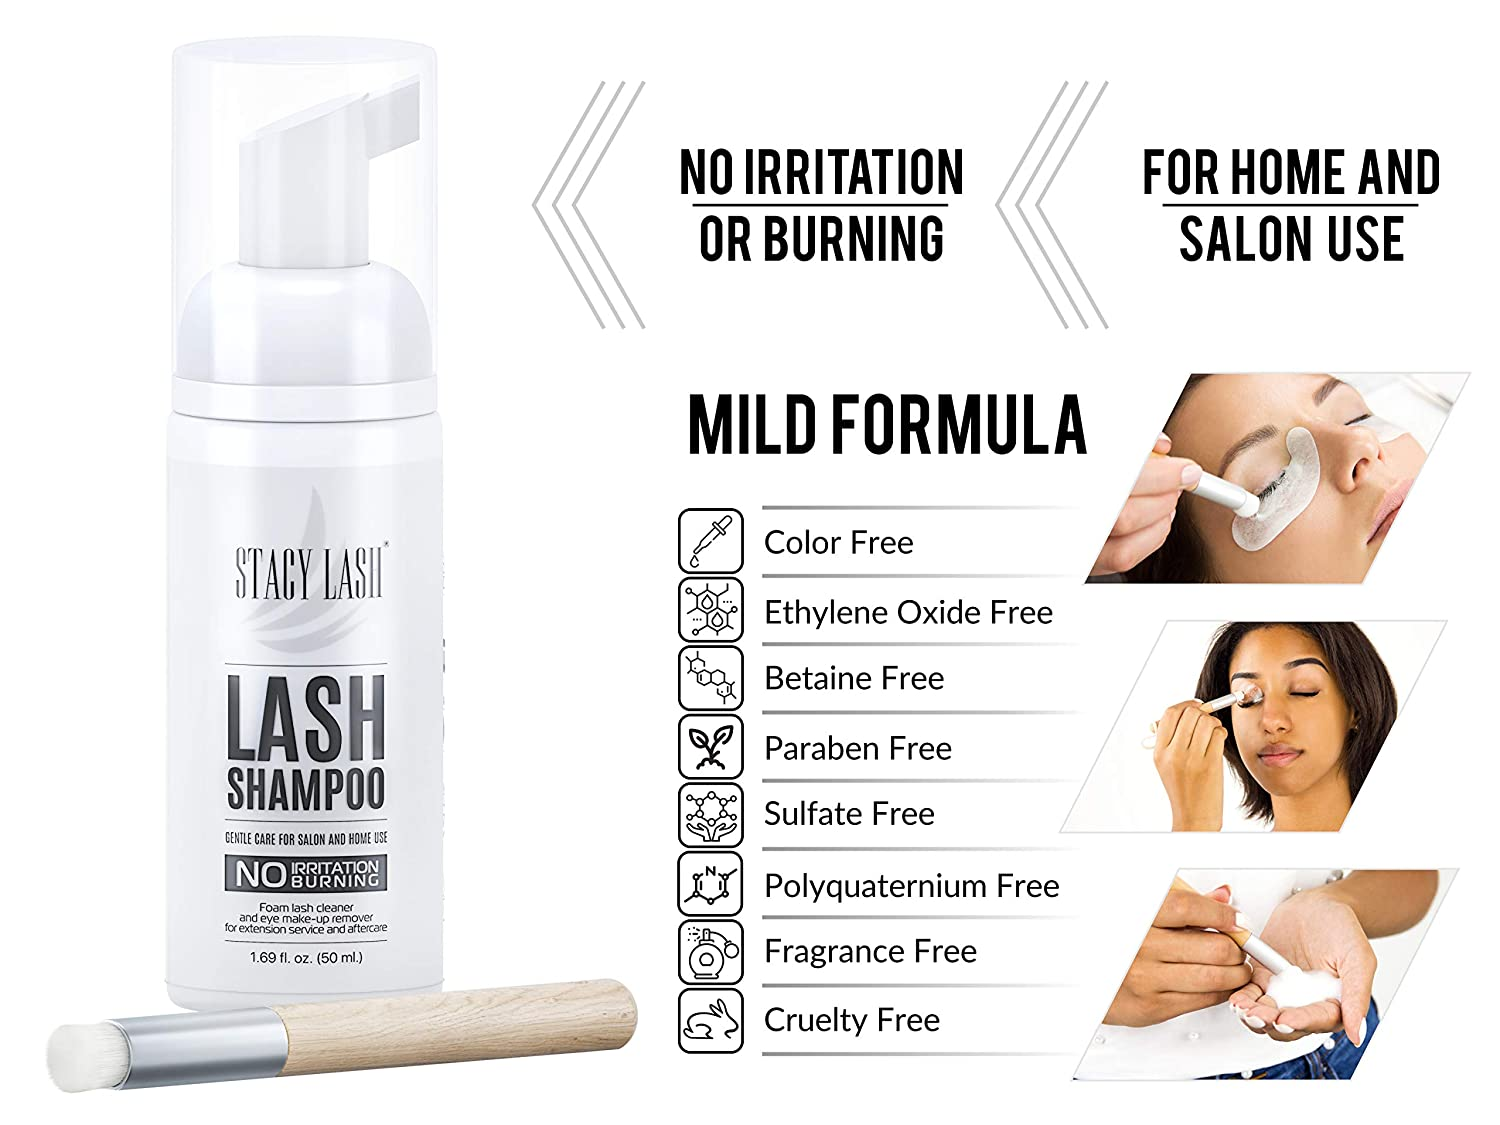 Eyelash Extension Shampoo Stacy Lash + Brush / 50ml / Eyelid Foaming Cleanser / Wash for Extensions and Natural Lashes / Paraben & Sulfate Free Safe Makeup & Mascara Remover / Professional & Self Use : Beauty